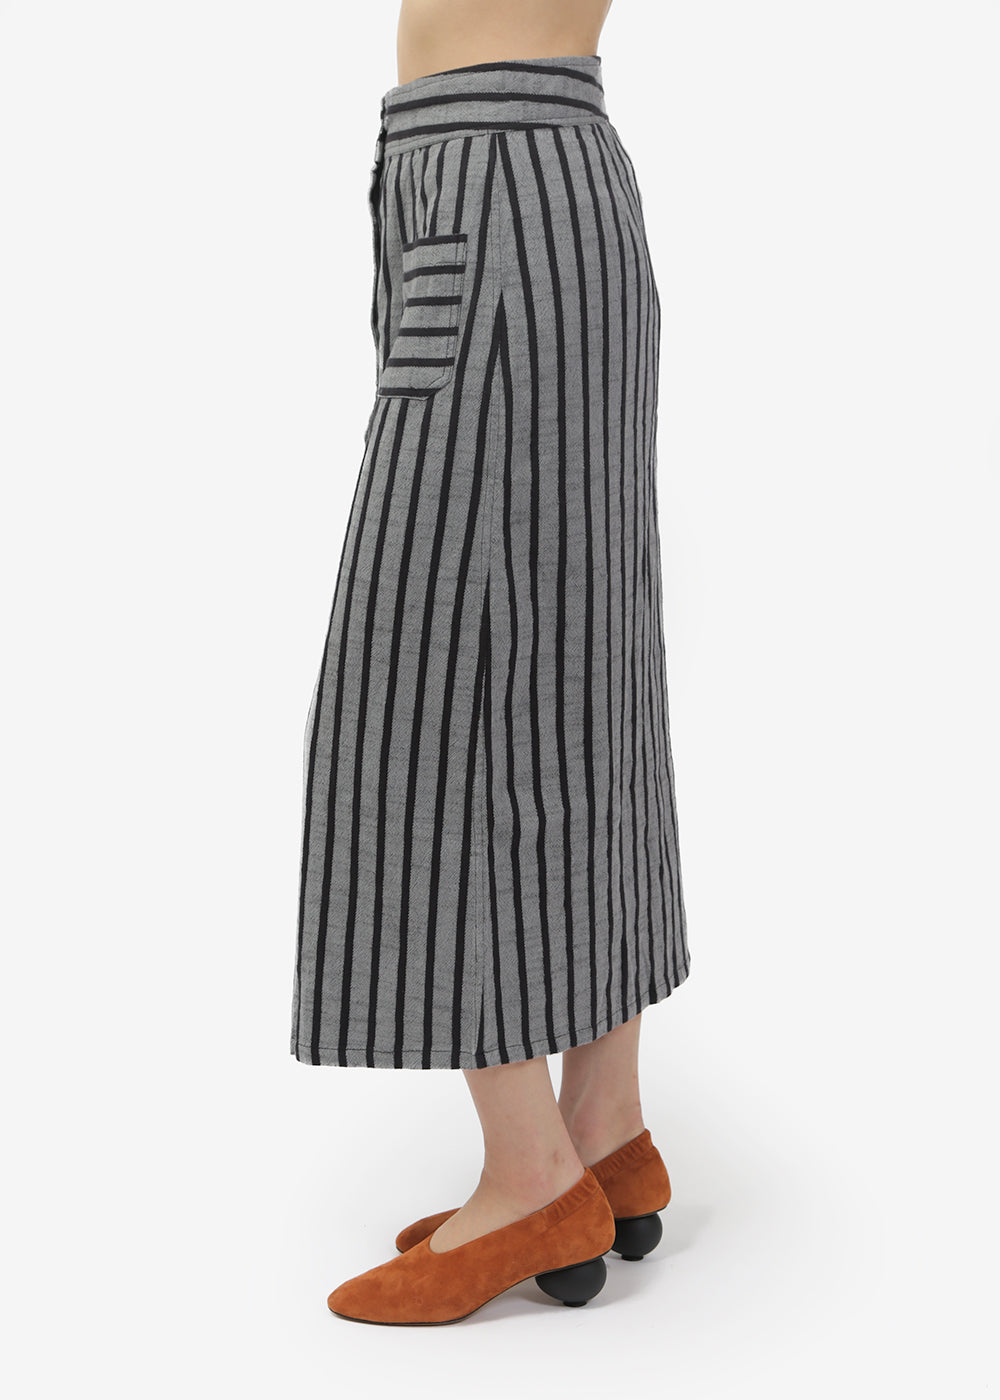 Ace & Jig Concrete Bo Skirt — Shop sustainable fashion and slow fashion at New Classics Studios